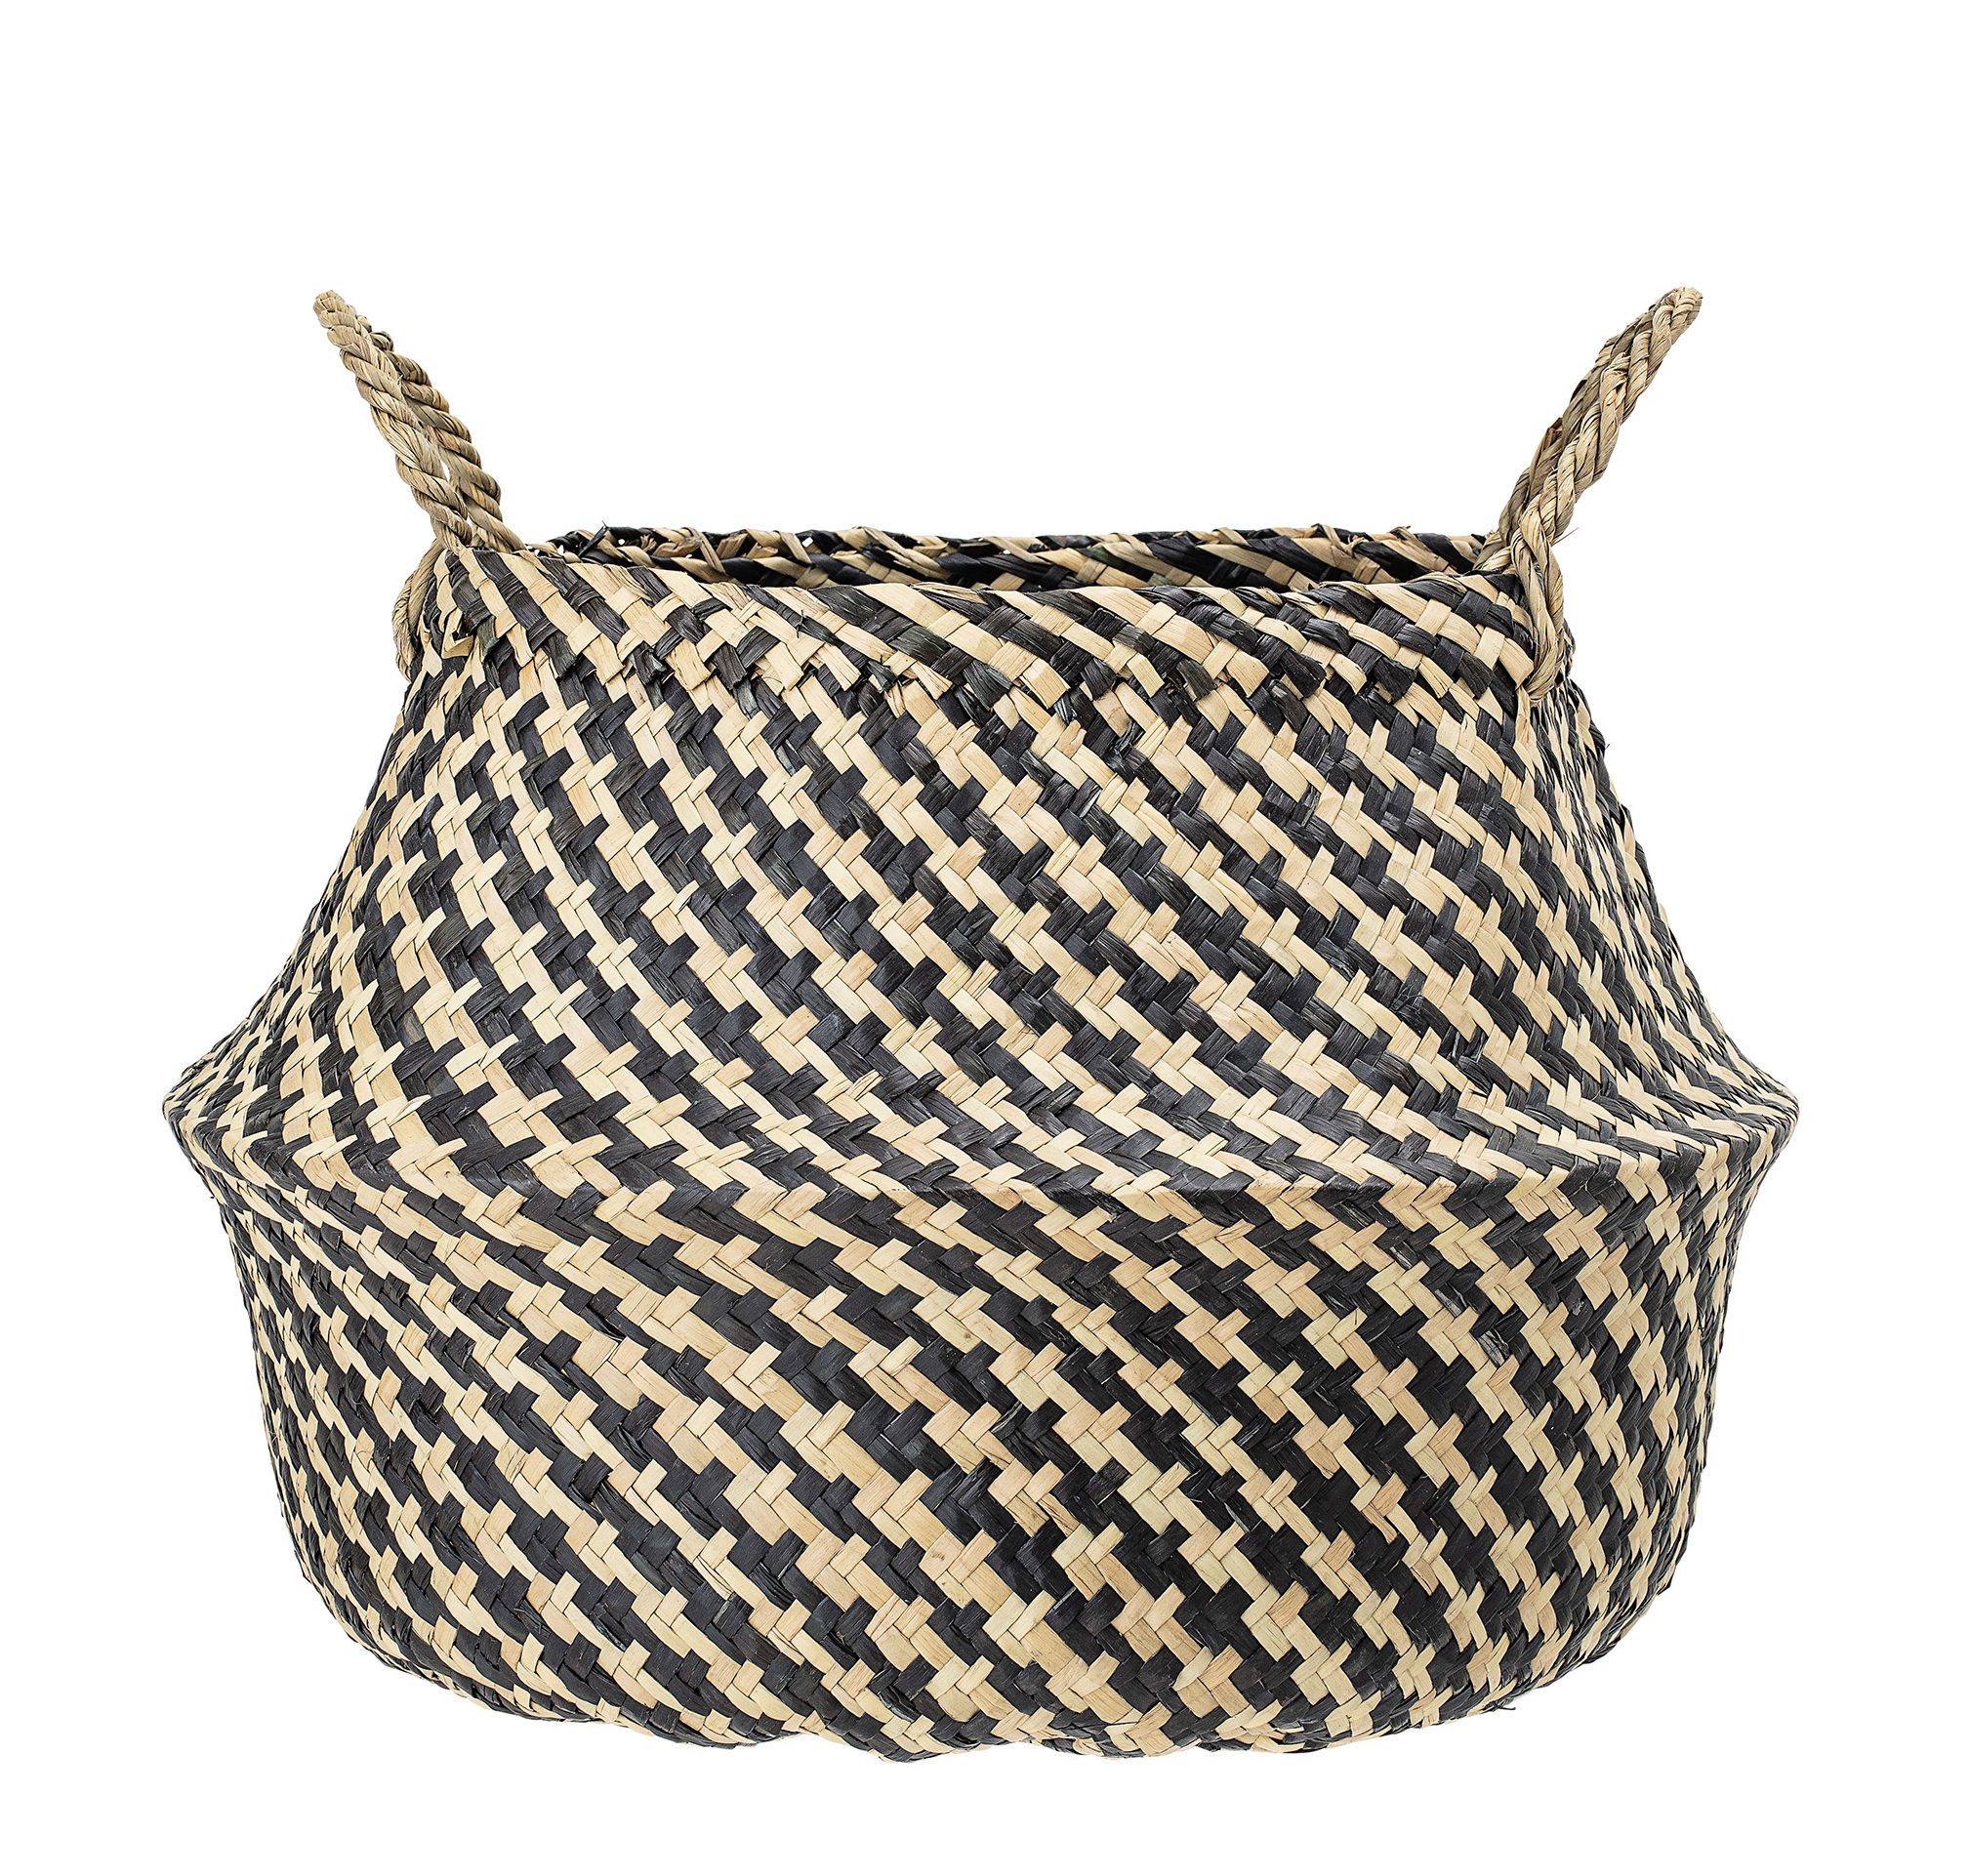 Decoration - Boxes & Baskets - Basket - / Seagrass by Bloomingville - Black & natural stripes - Seagrass